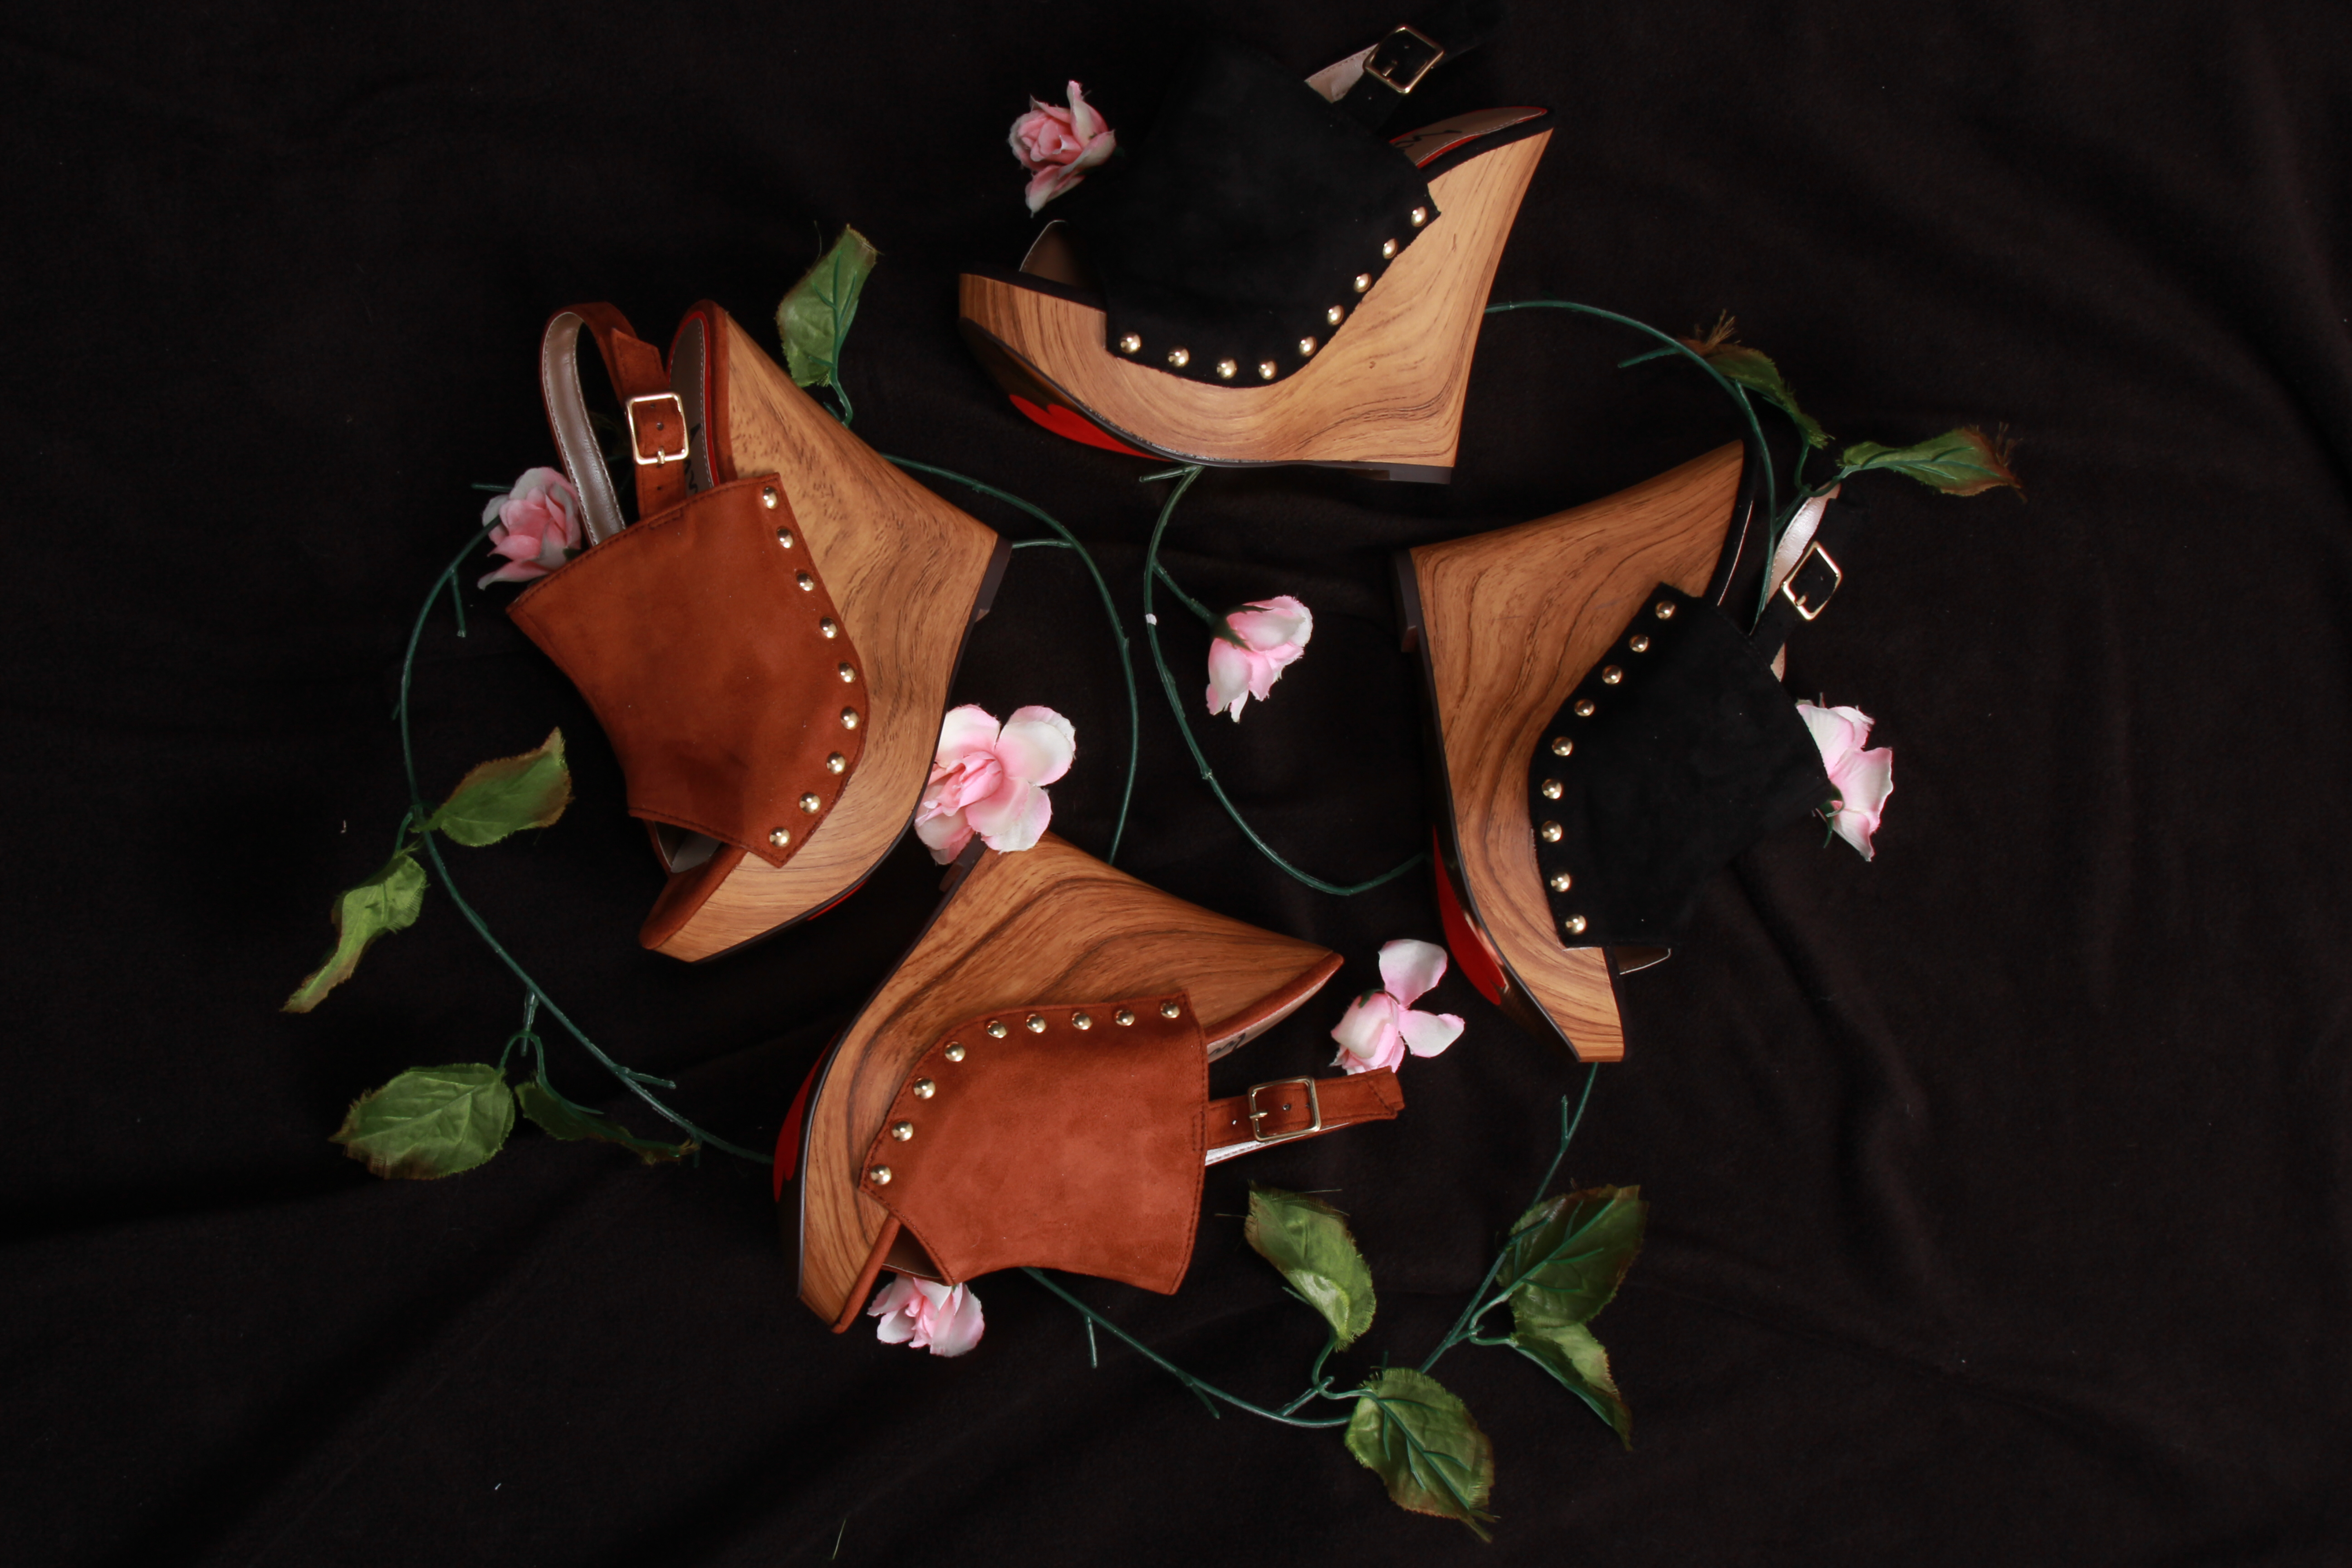 Moonstruck wedge by luichiny promo